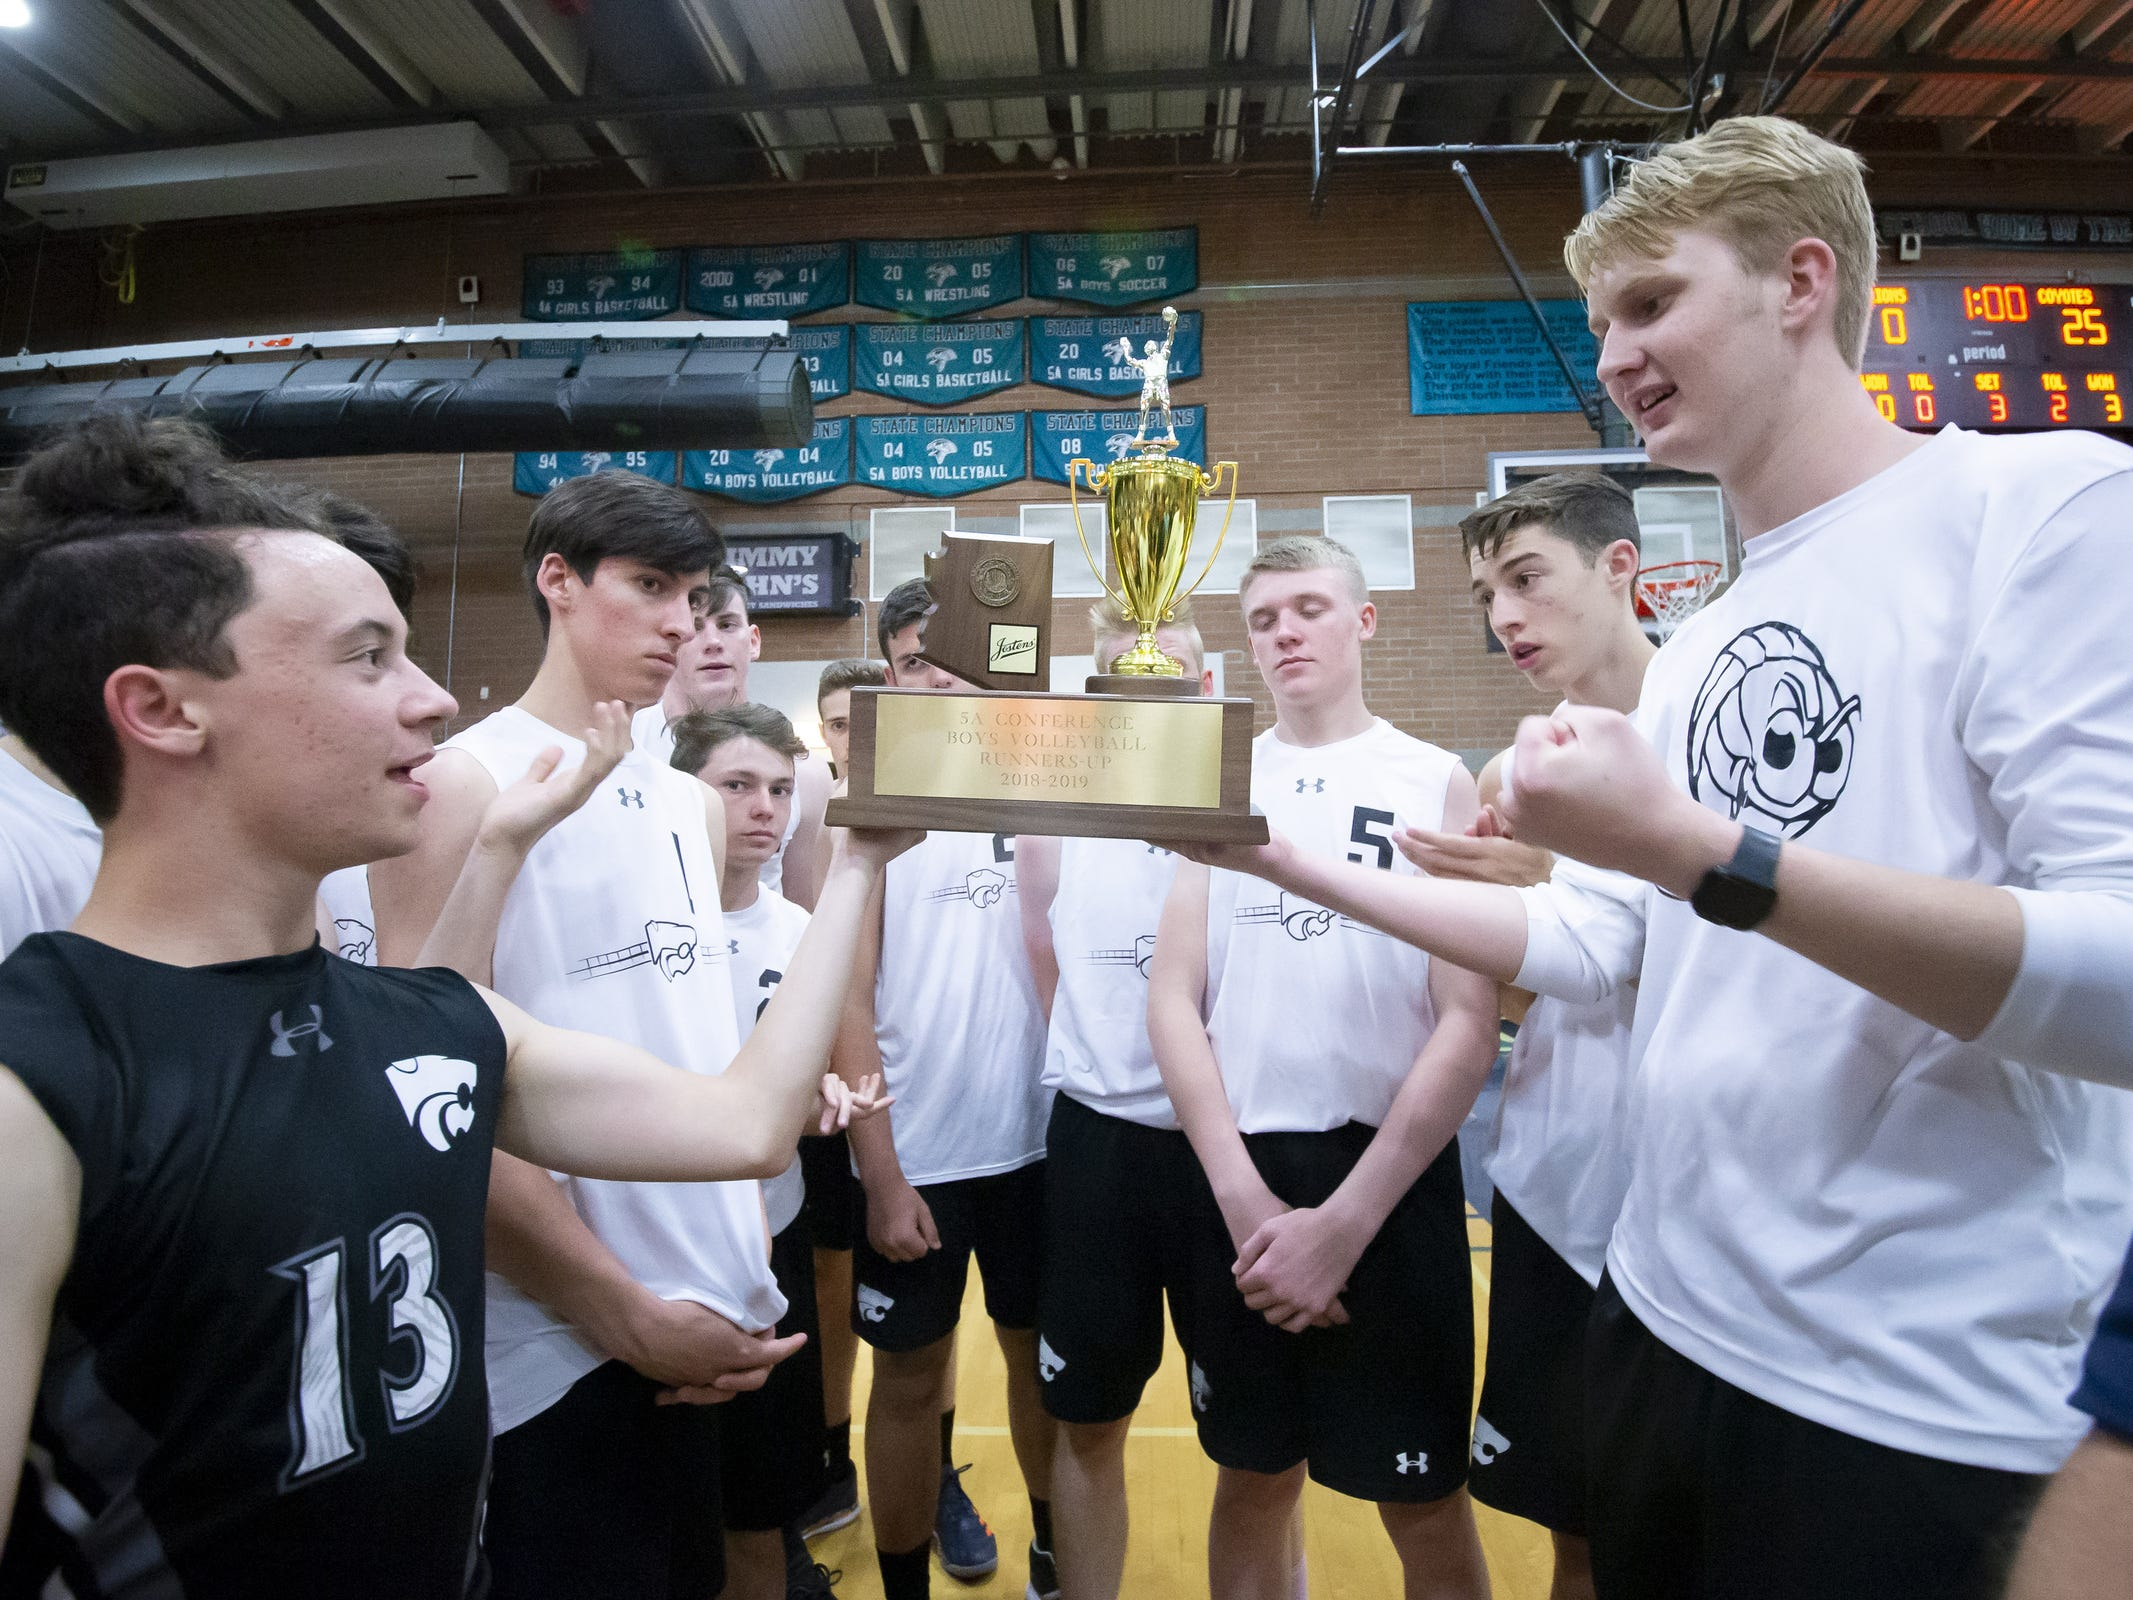 The Tucson Mountain View Mountain Lions hold up their runners-up trophy following their 3-0 loss against the Campo Verde Coyotes in the 5A Boys Volleyball State Championships at Higley High School on Saturday, May 11, 2019 in Gilbert, Arizona.